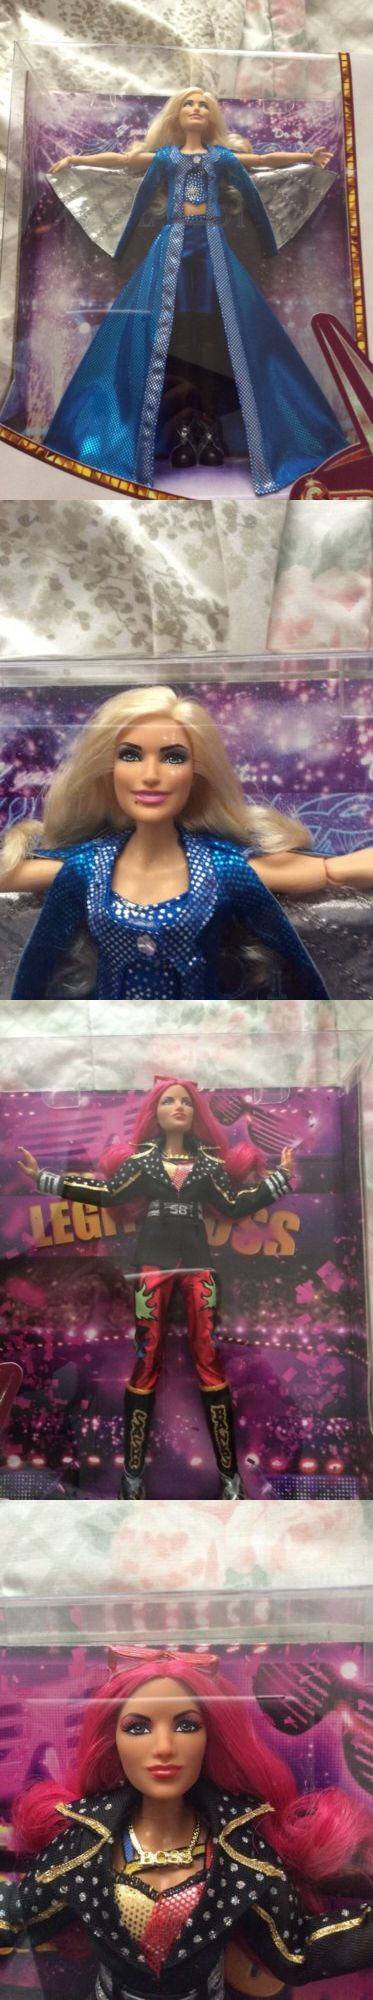 Sports 754: Sdcc 2017 Exclusive Sasha Banks Charlotte Flair Wwe Superstars -> BUY IT NOW ONLY: $92 on eBay!